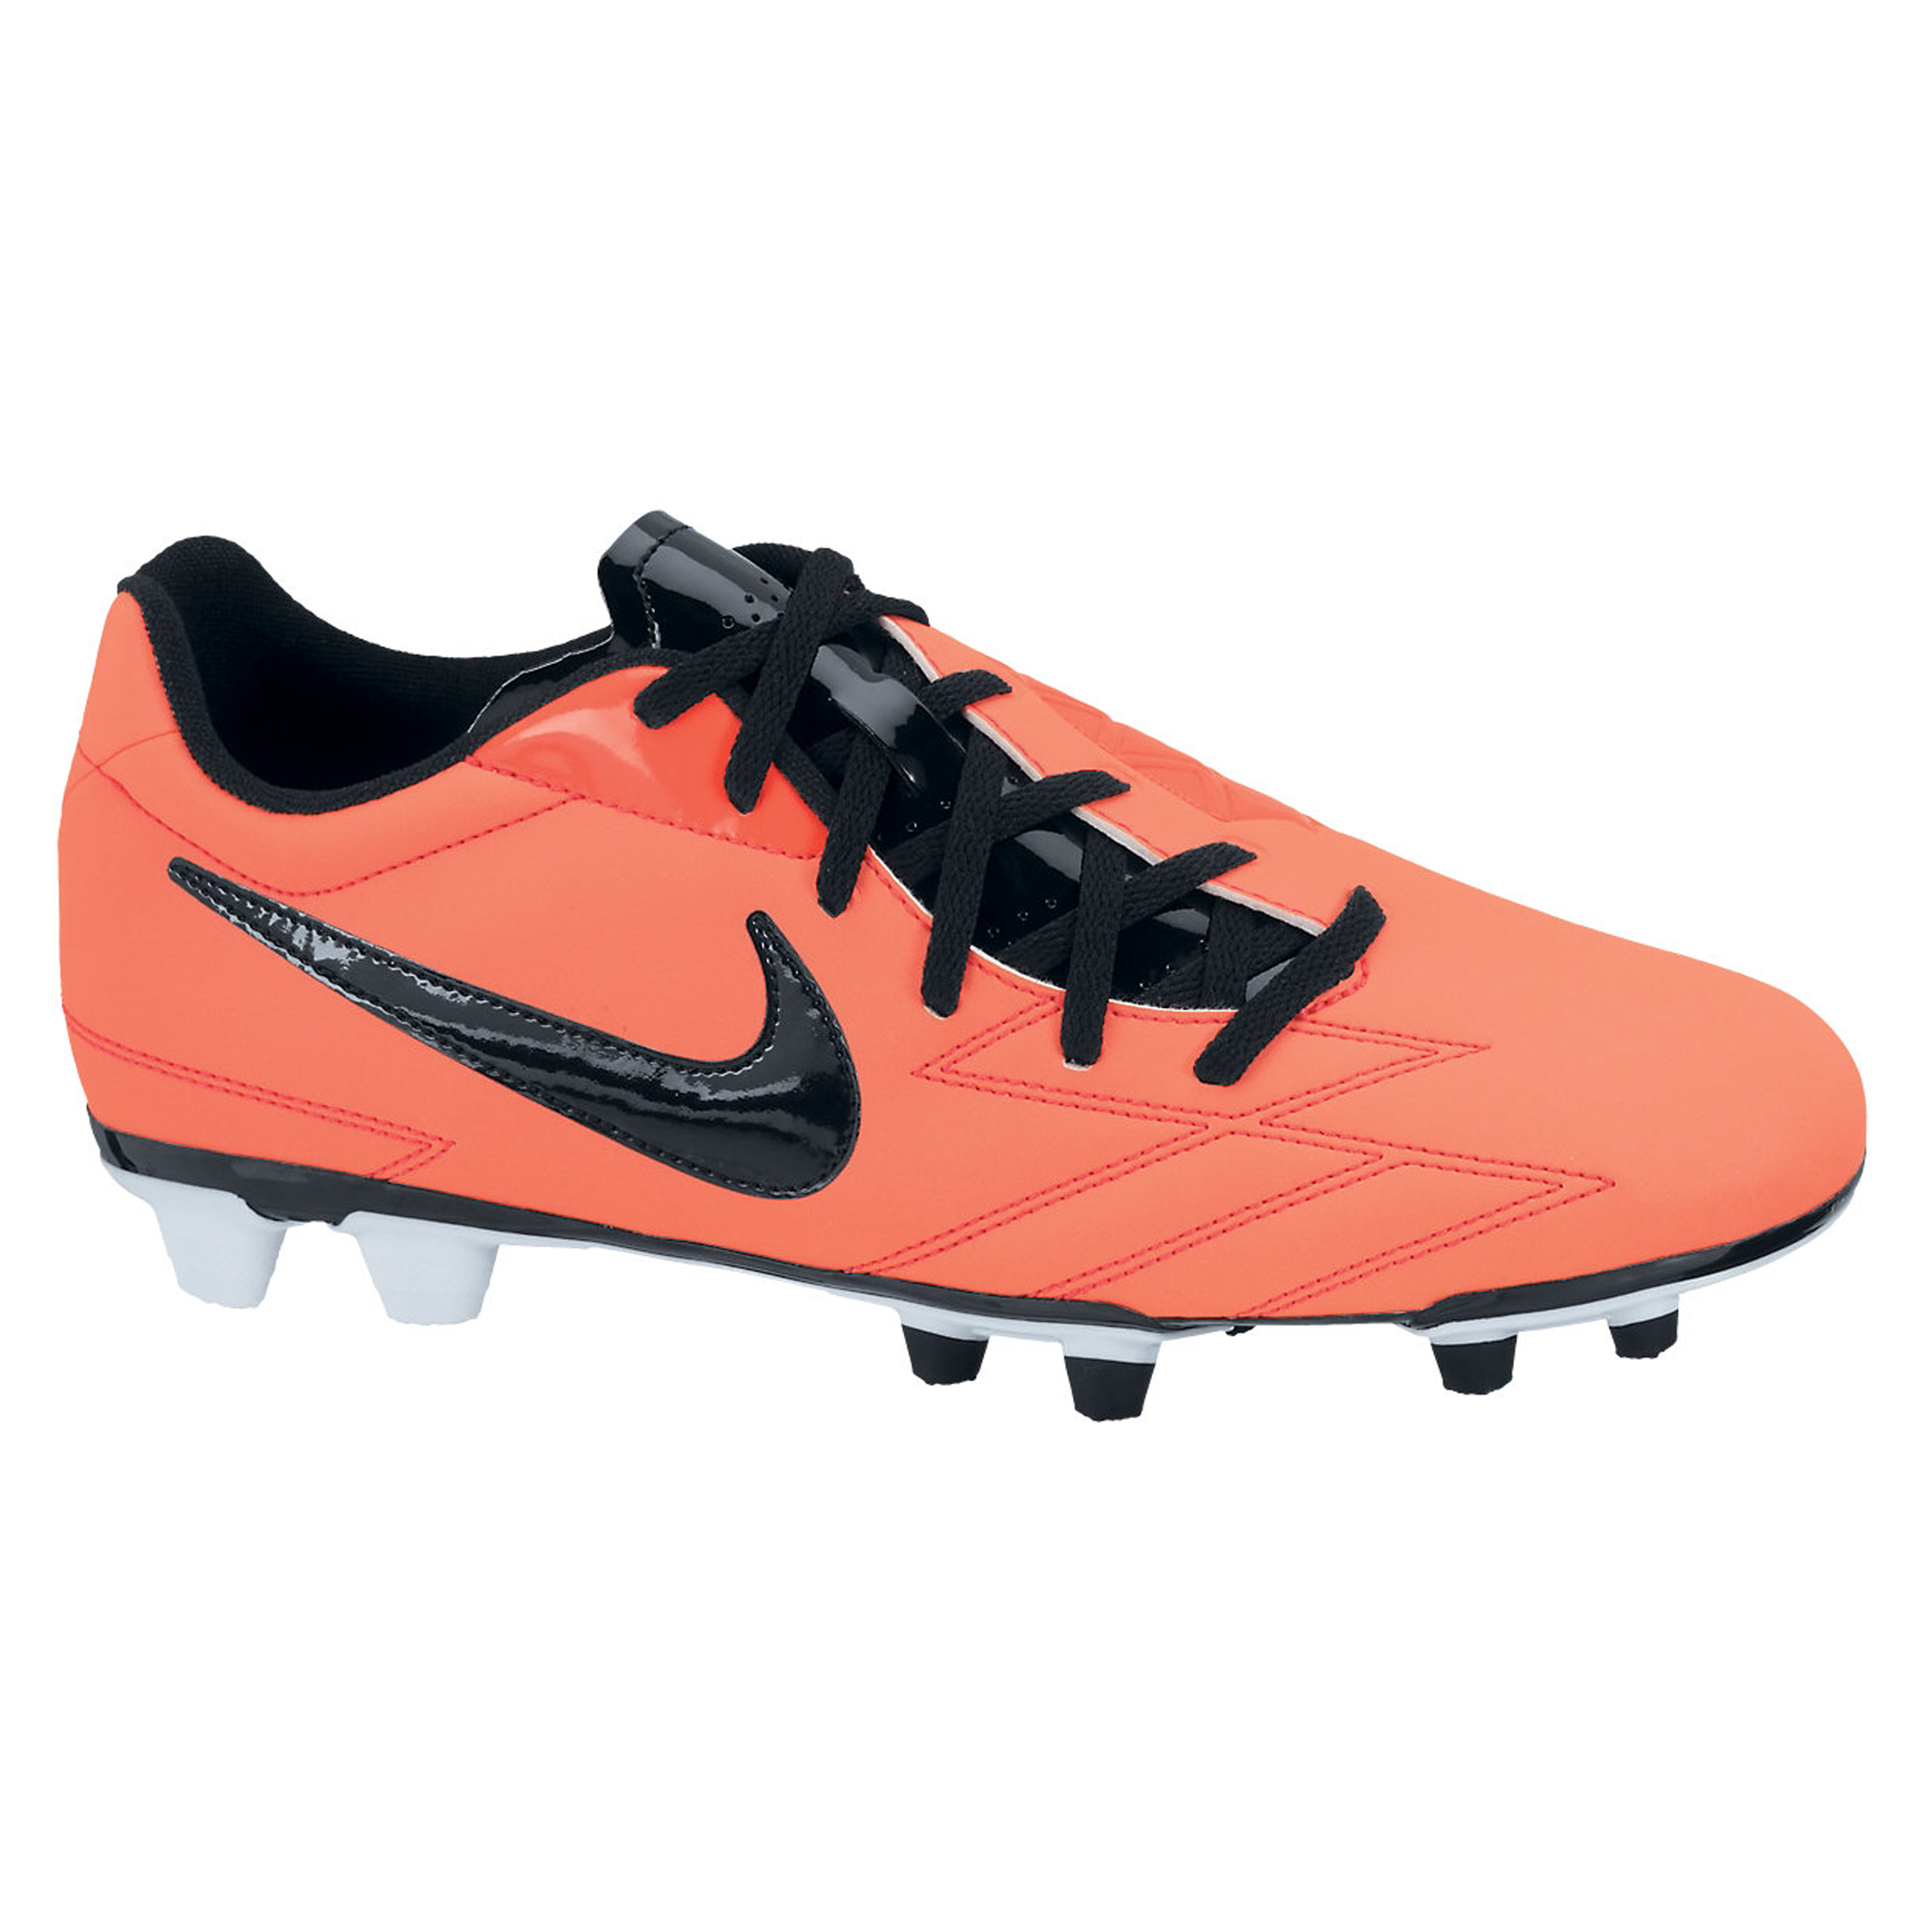 Nike Total90 Exacto IV Firm Ground Football Boots - Bright Mango/Black/Total Crimson/White